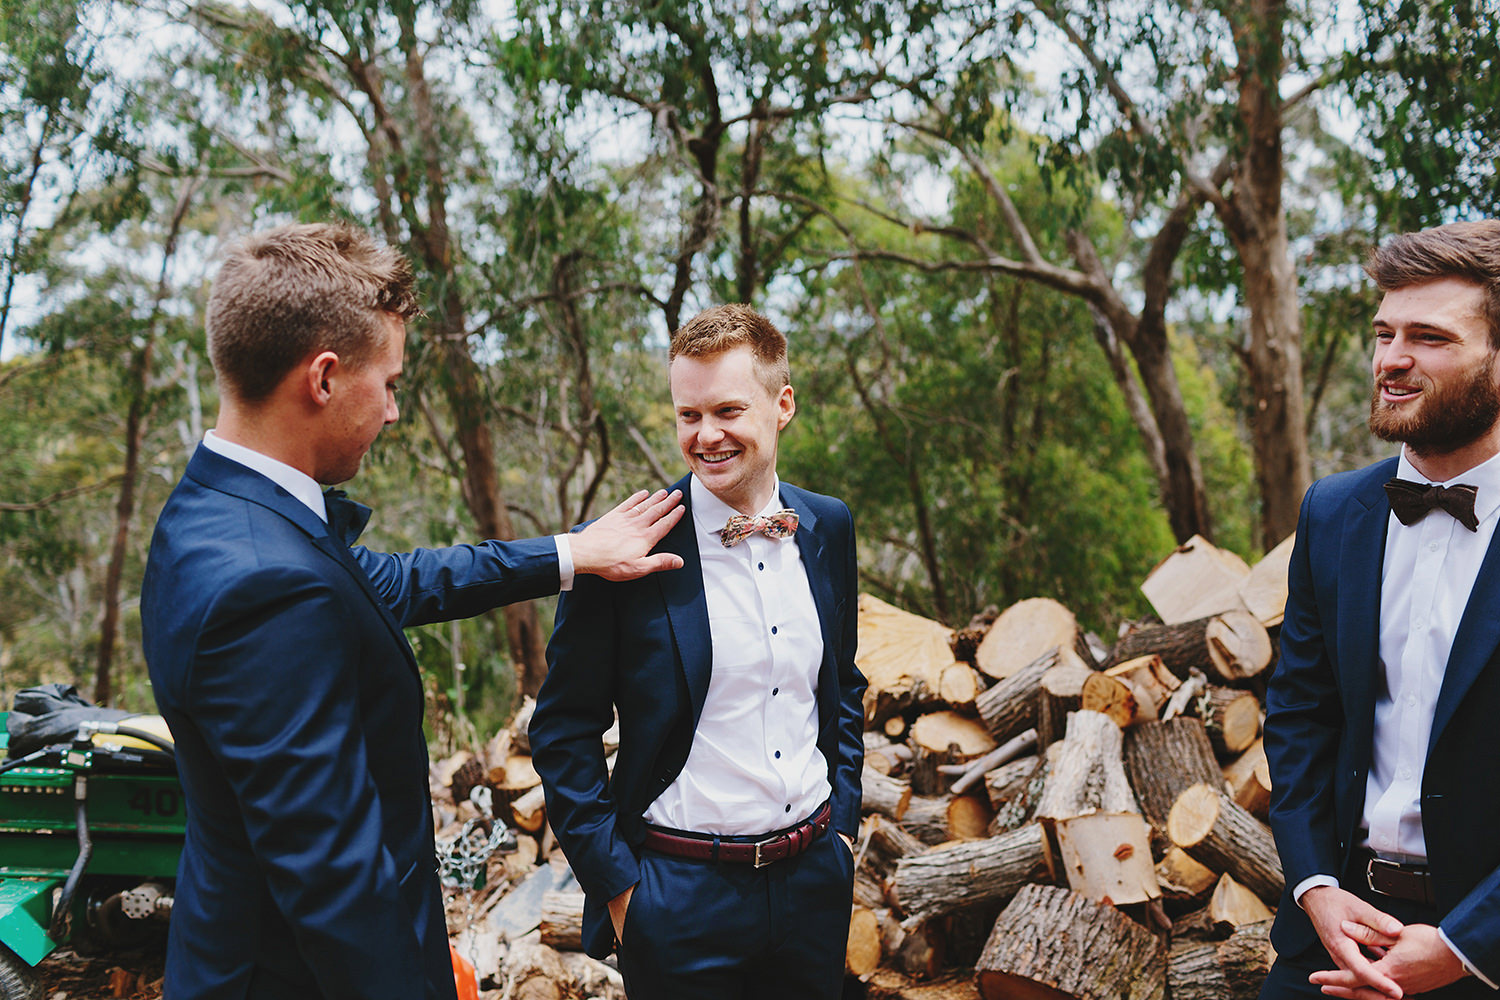 Melbourne_Garden_Wedding_Nick_Kim020.JPG